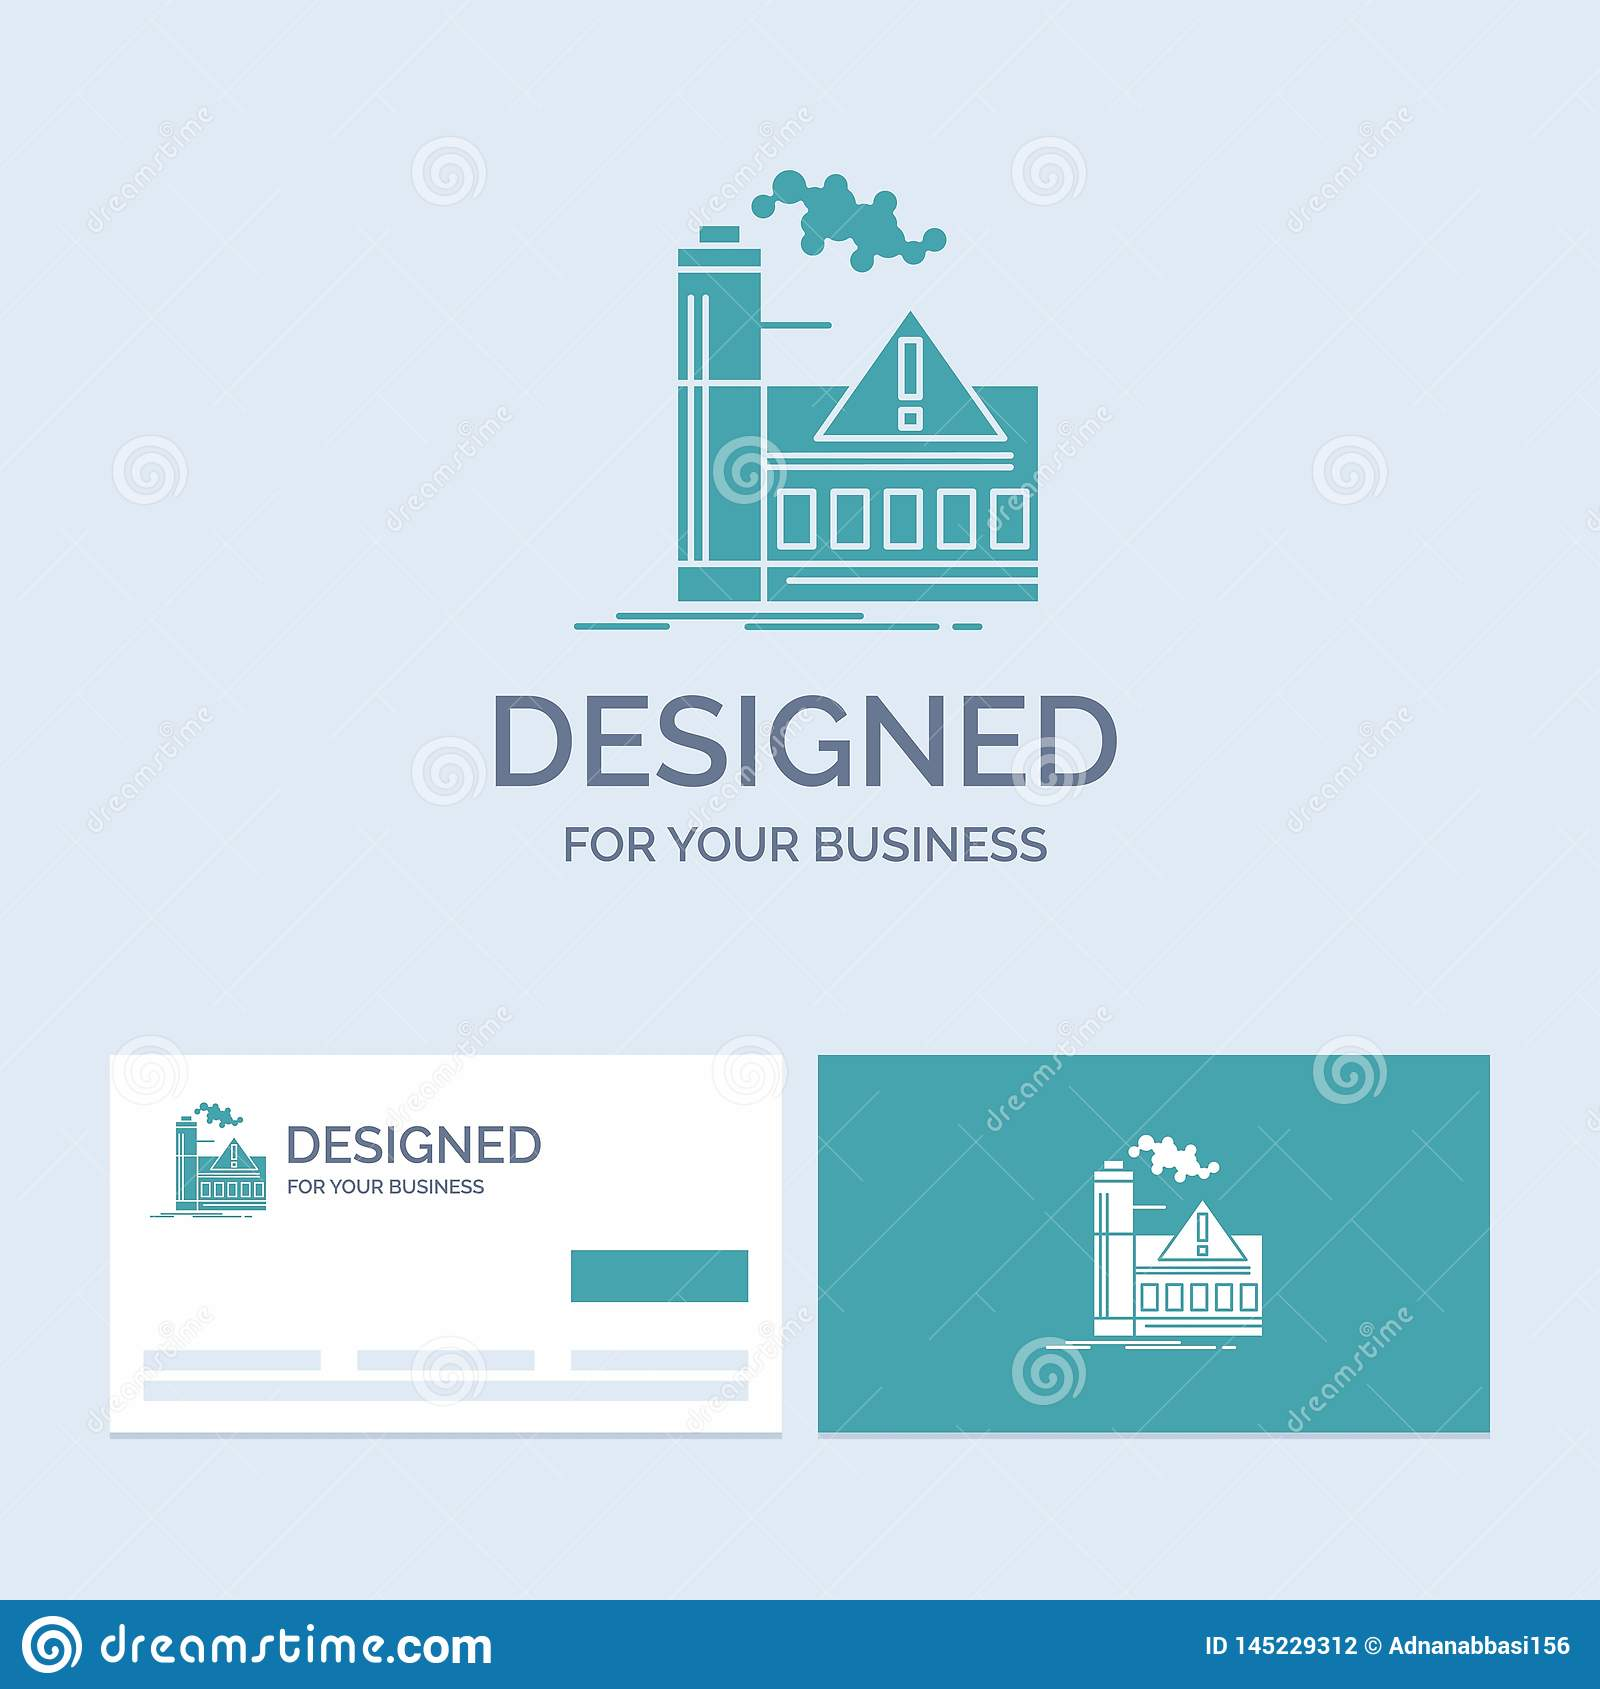 pollution, Factory, Air, Alert, industry Business Logo Glyph Icon Symbol for your business. Turquoise Business Cards with Brand